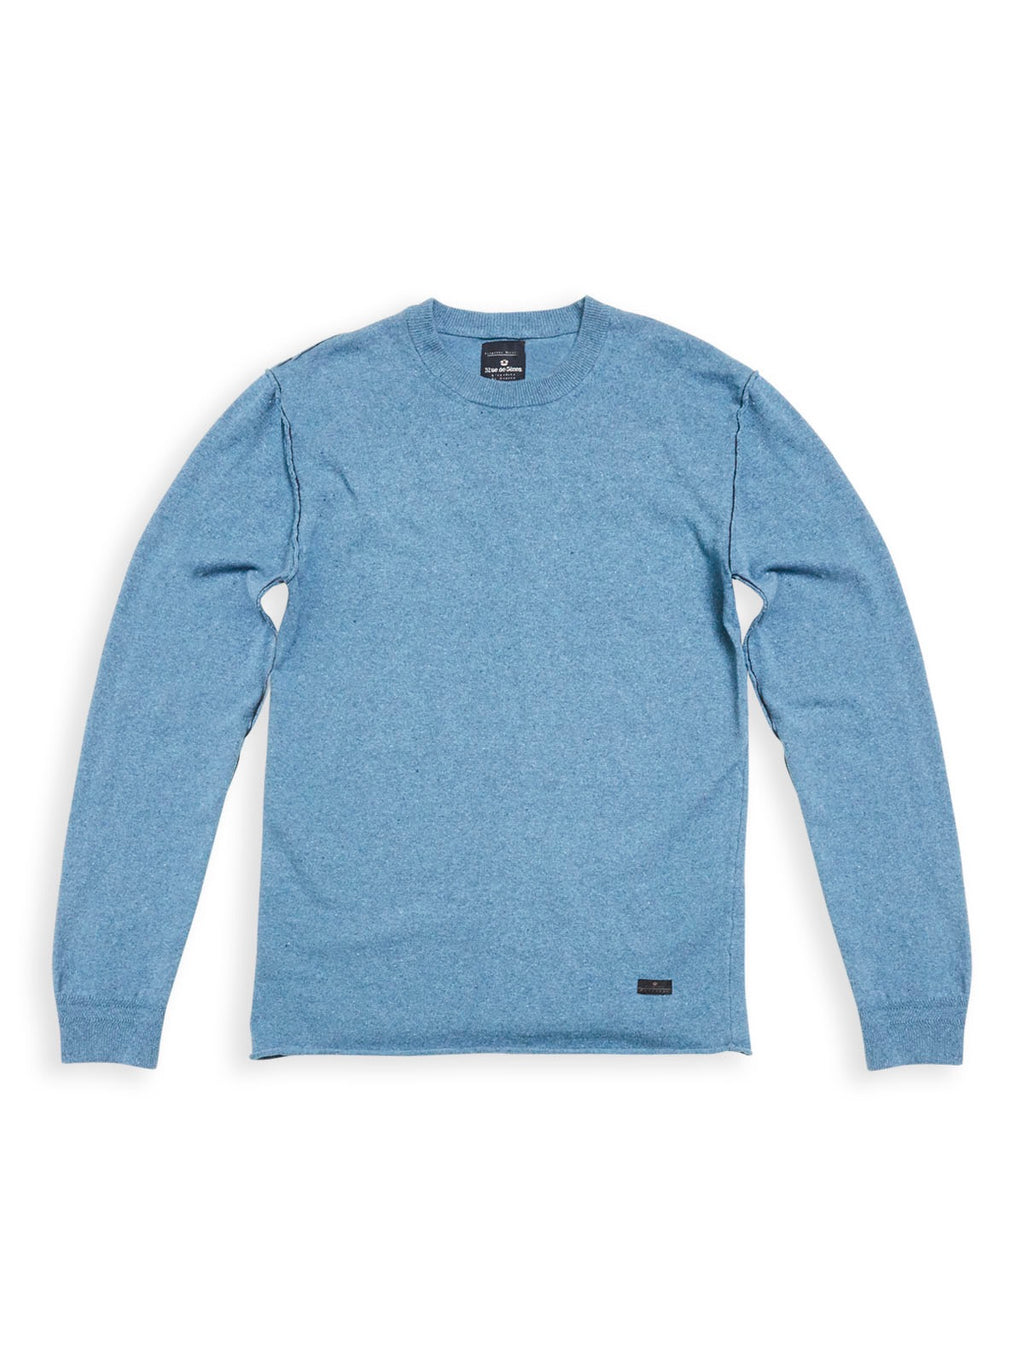 Blue de Genes San Pietro Denim Knit